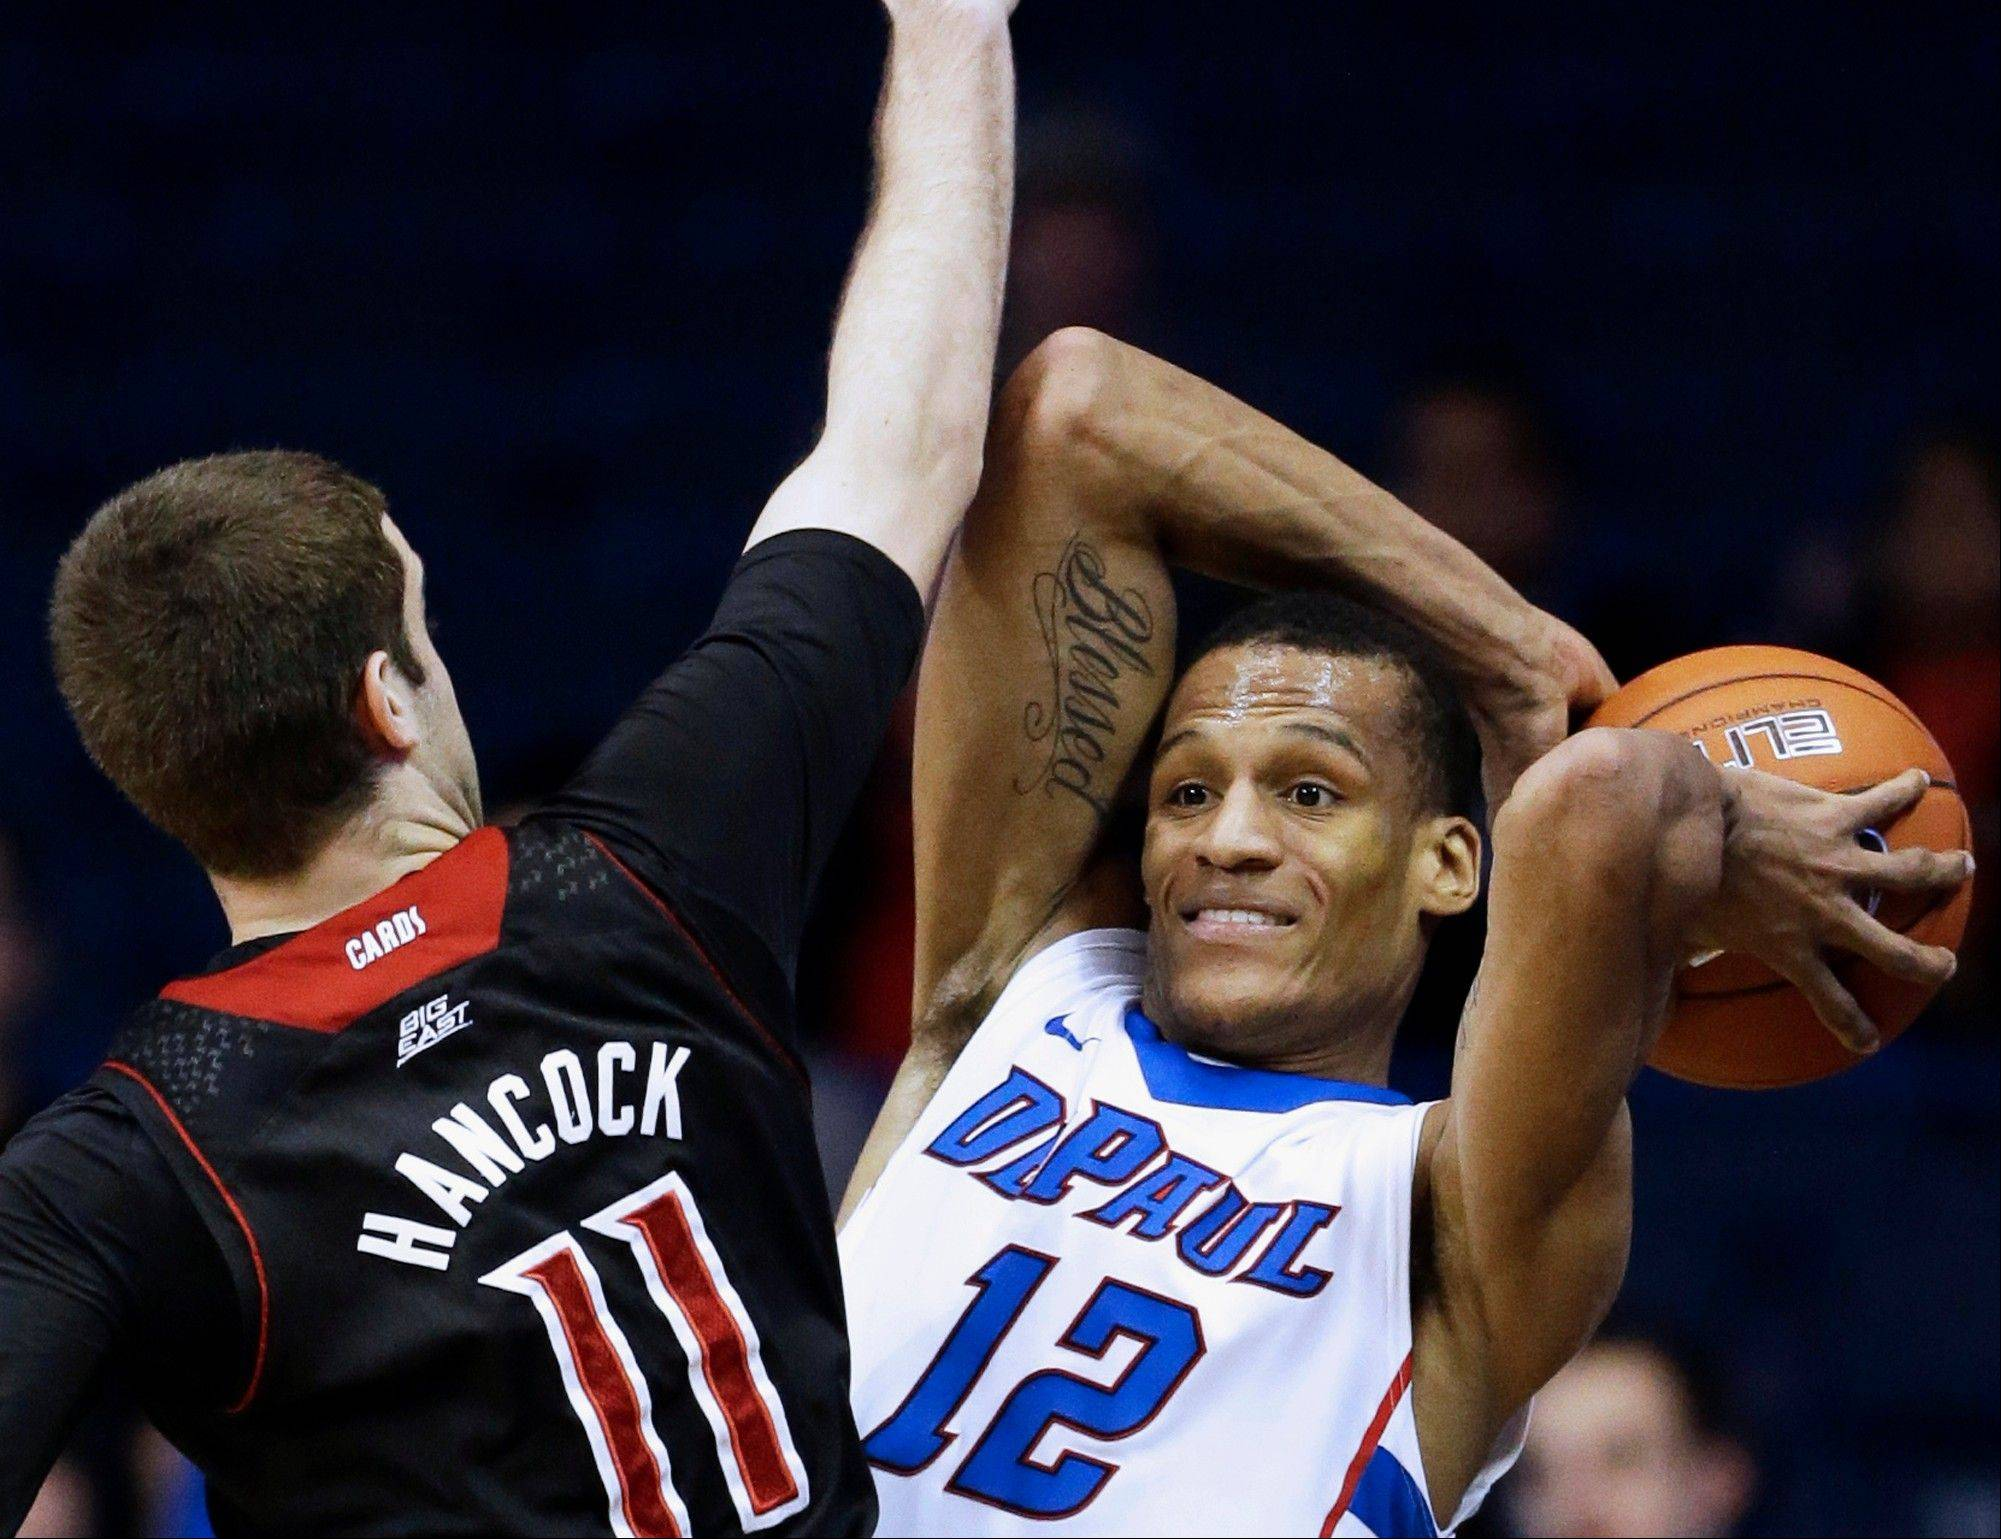 DePaul�s Cleveland Melvin, right, looks to pass against Louisville�s Luke Hancock during a game last season in Rosemont.